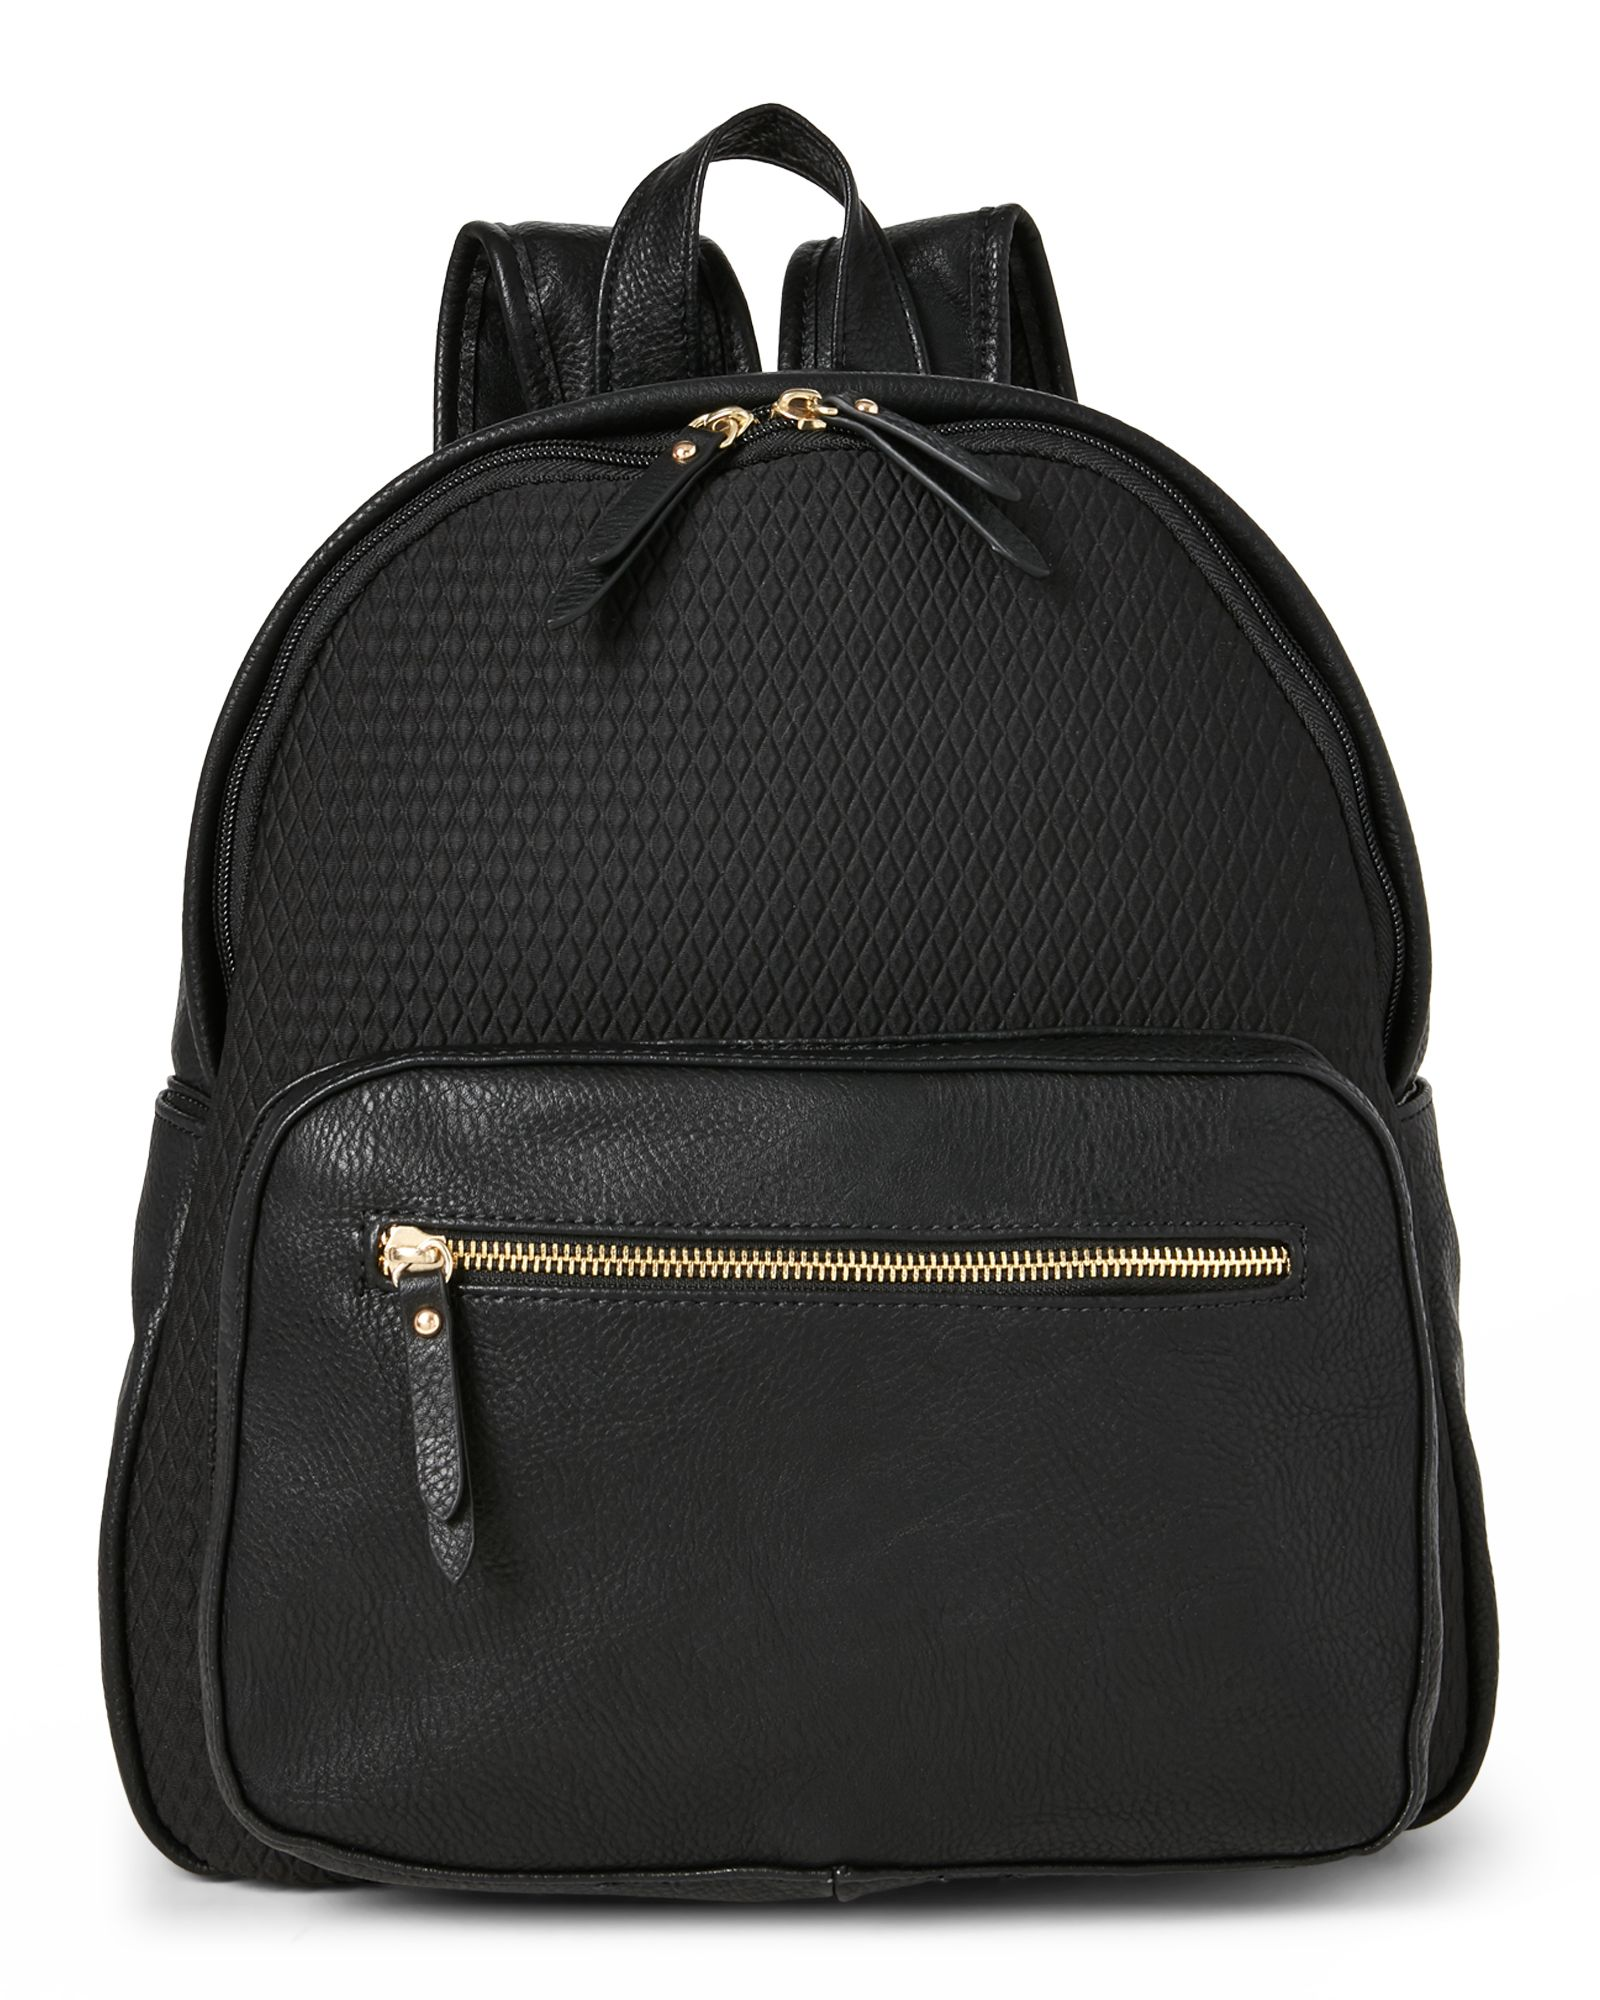 Poverty Flats Black Embossed Neoprene Sport Backpack